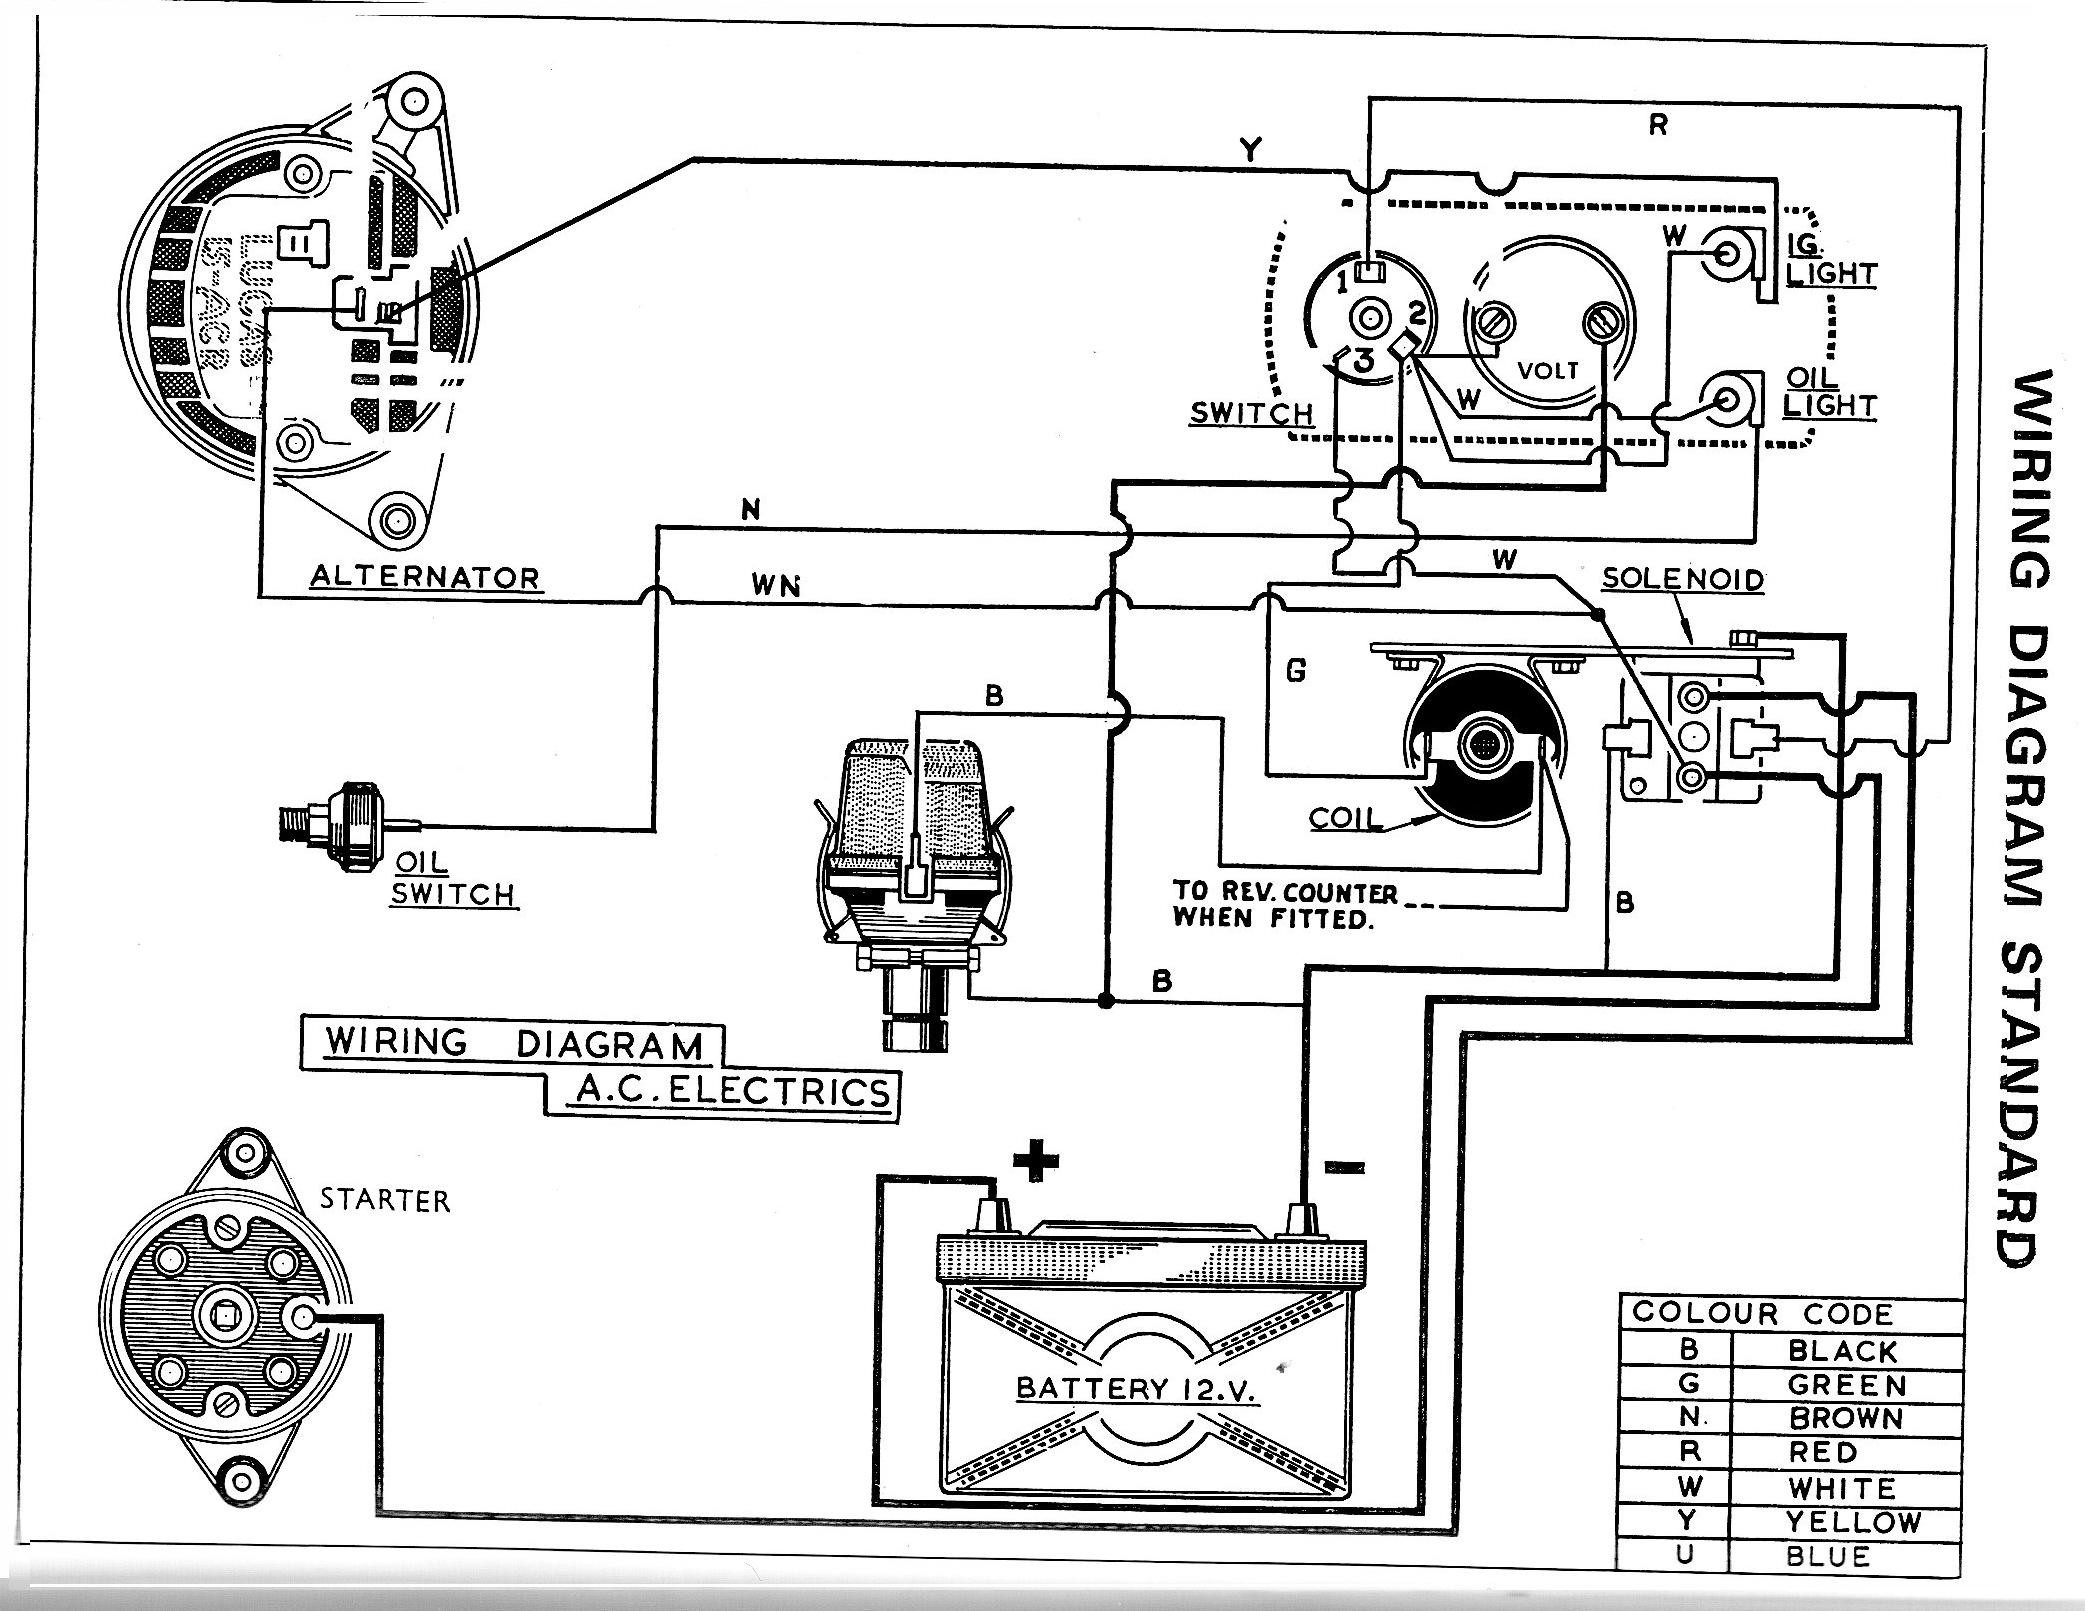 [DIAGRAM] 78 Ford Key Switch Wiring Diagram FULL Version